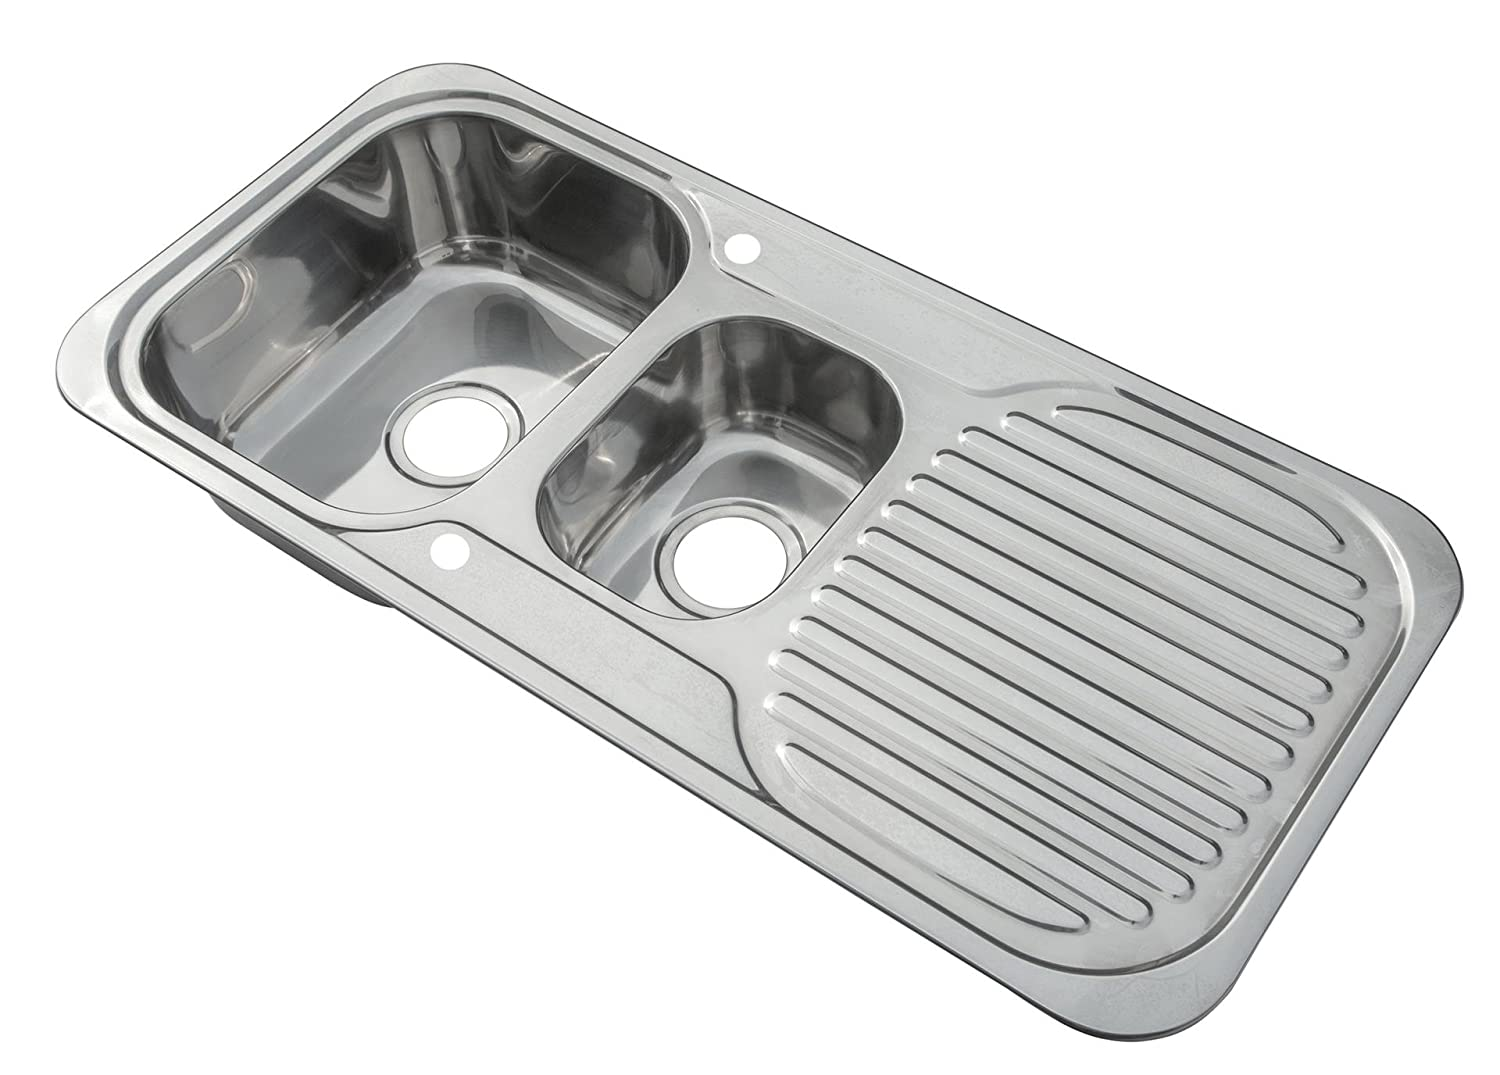 Kitchen Sinks Inset 1.5 Bowl Polished Finish With Drainer And Waste Kit (E01 mr) Grand Taps